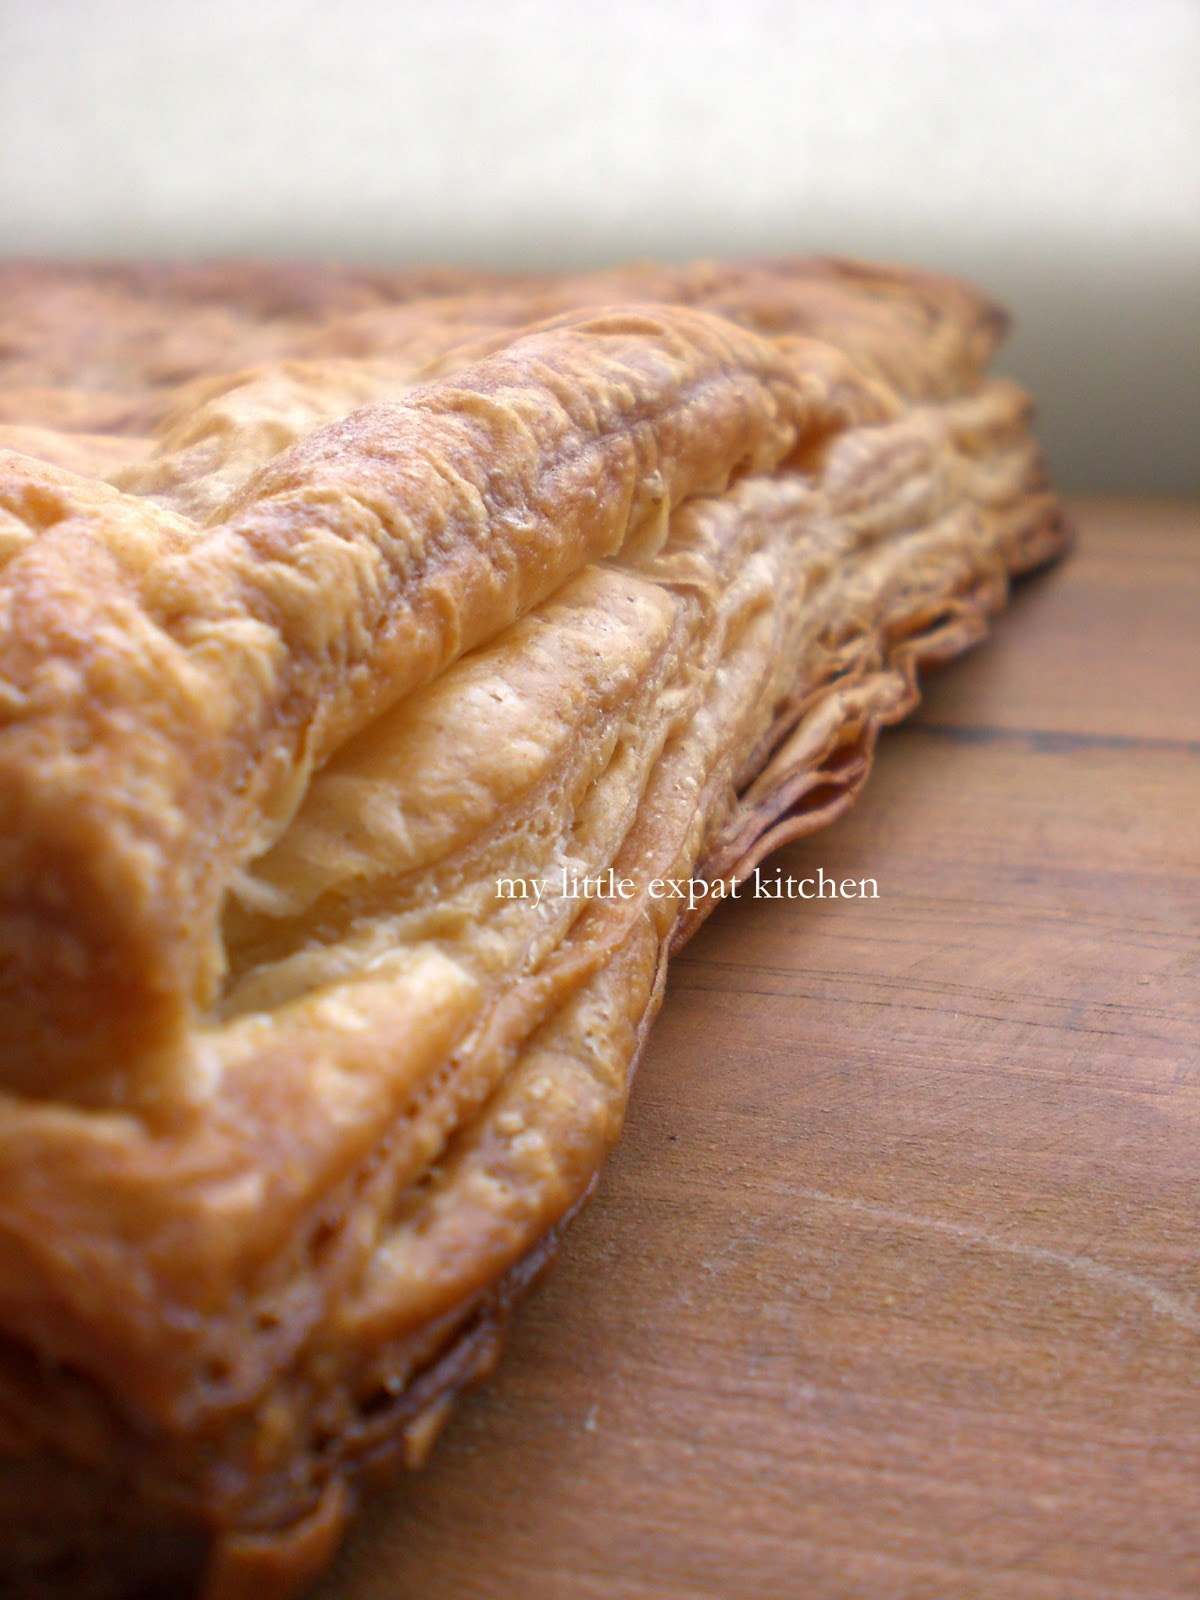 My Little Expat Kitchen: French puff pastry - Pâte feuilletée